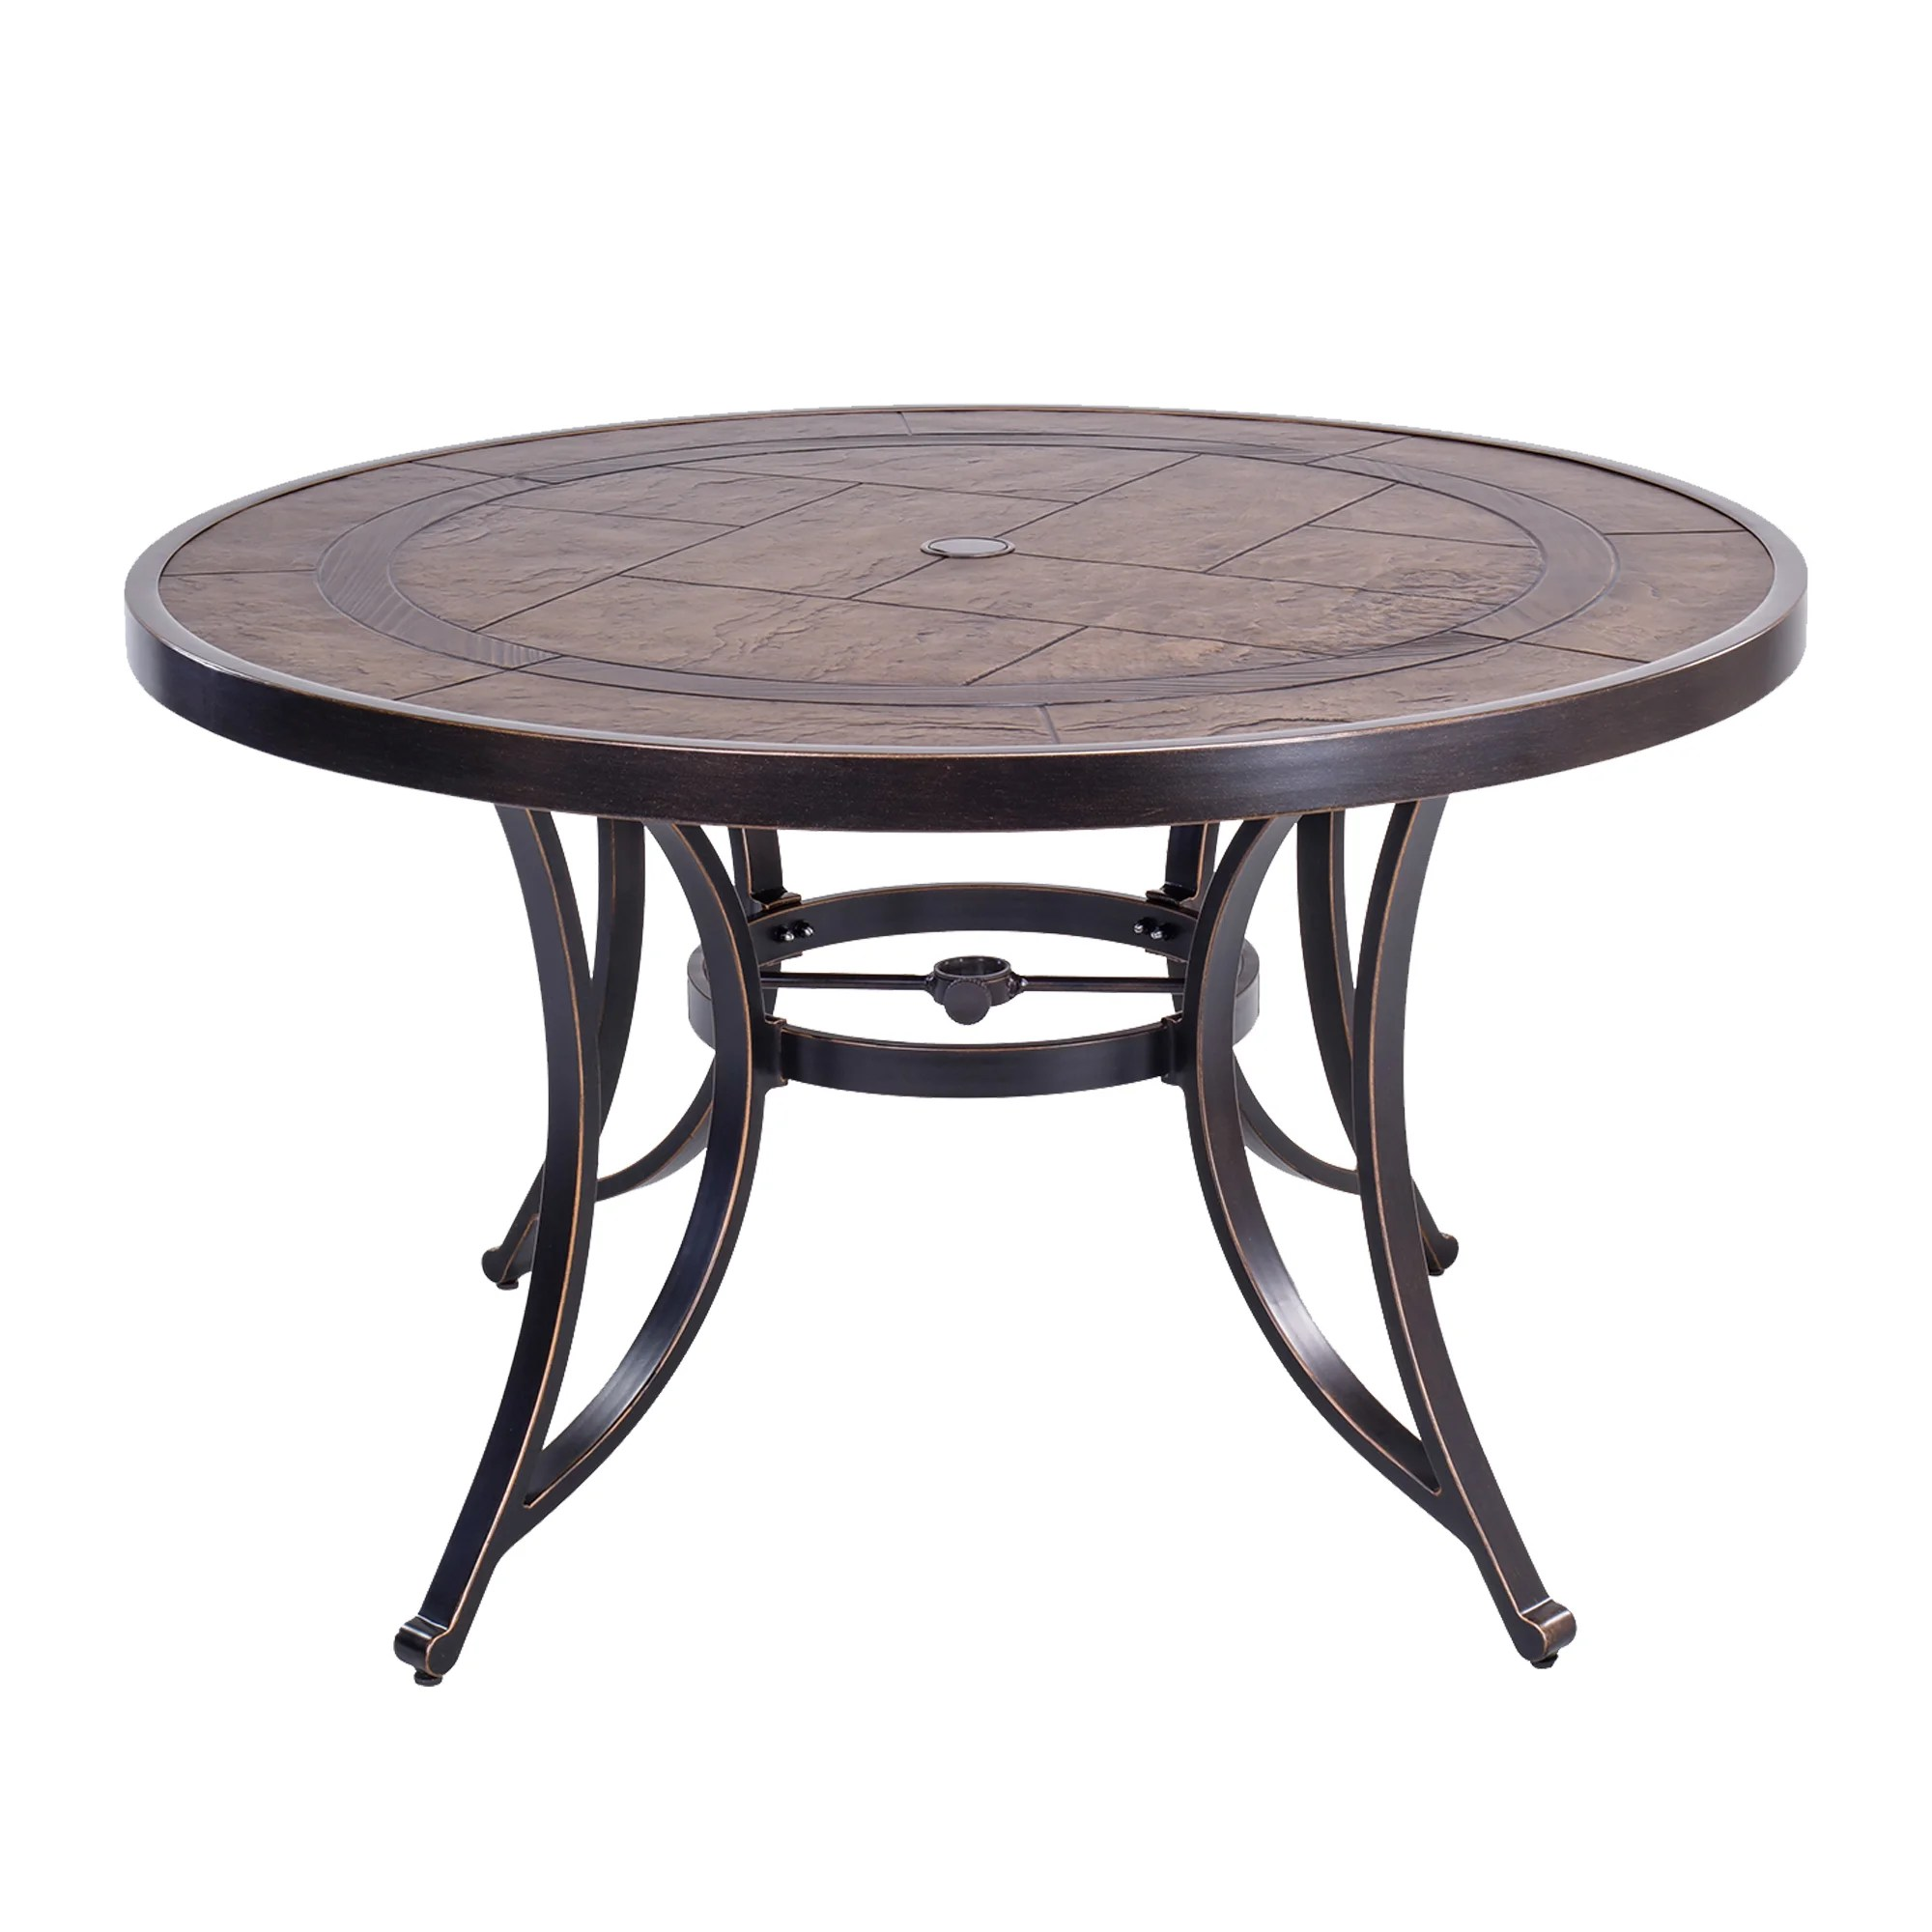 48 round dining table outdoor patio garden furniture